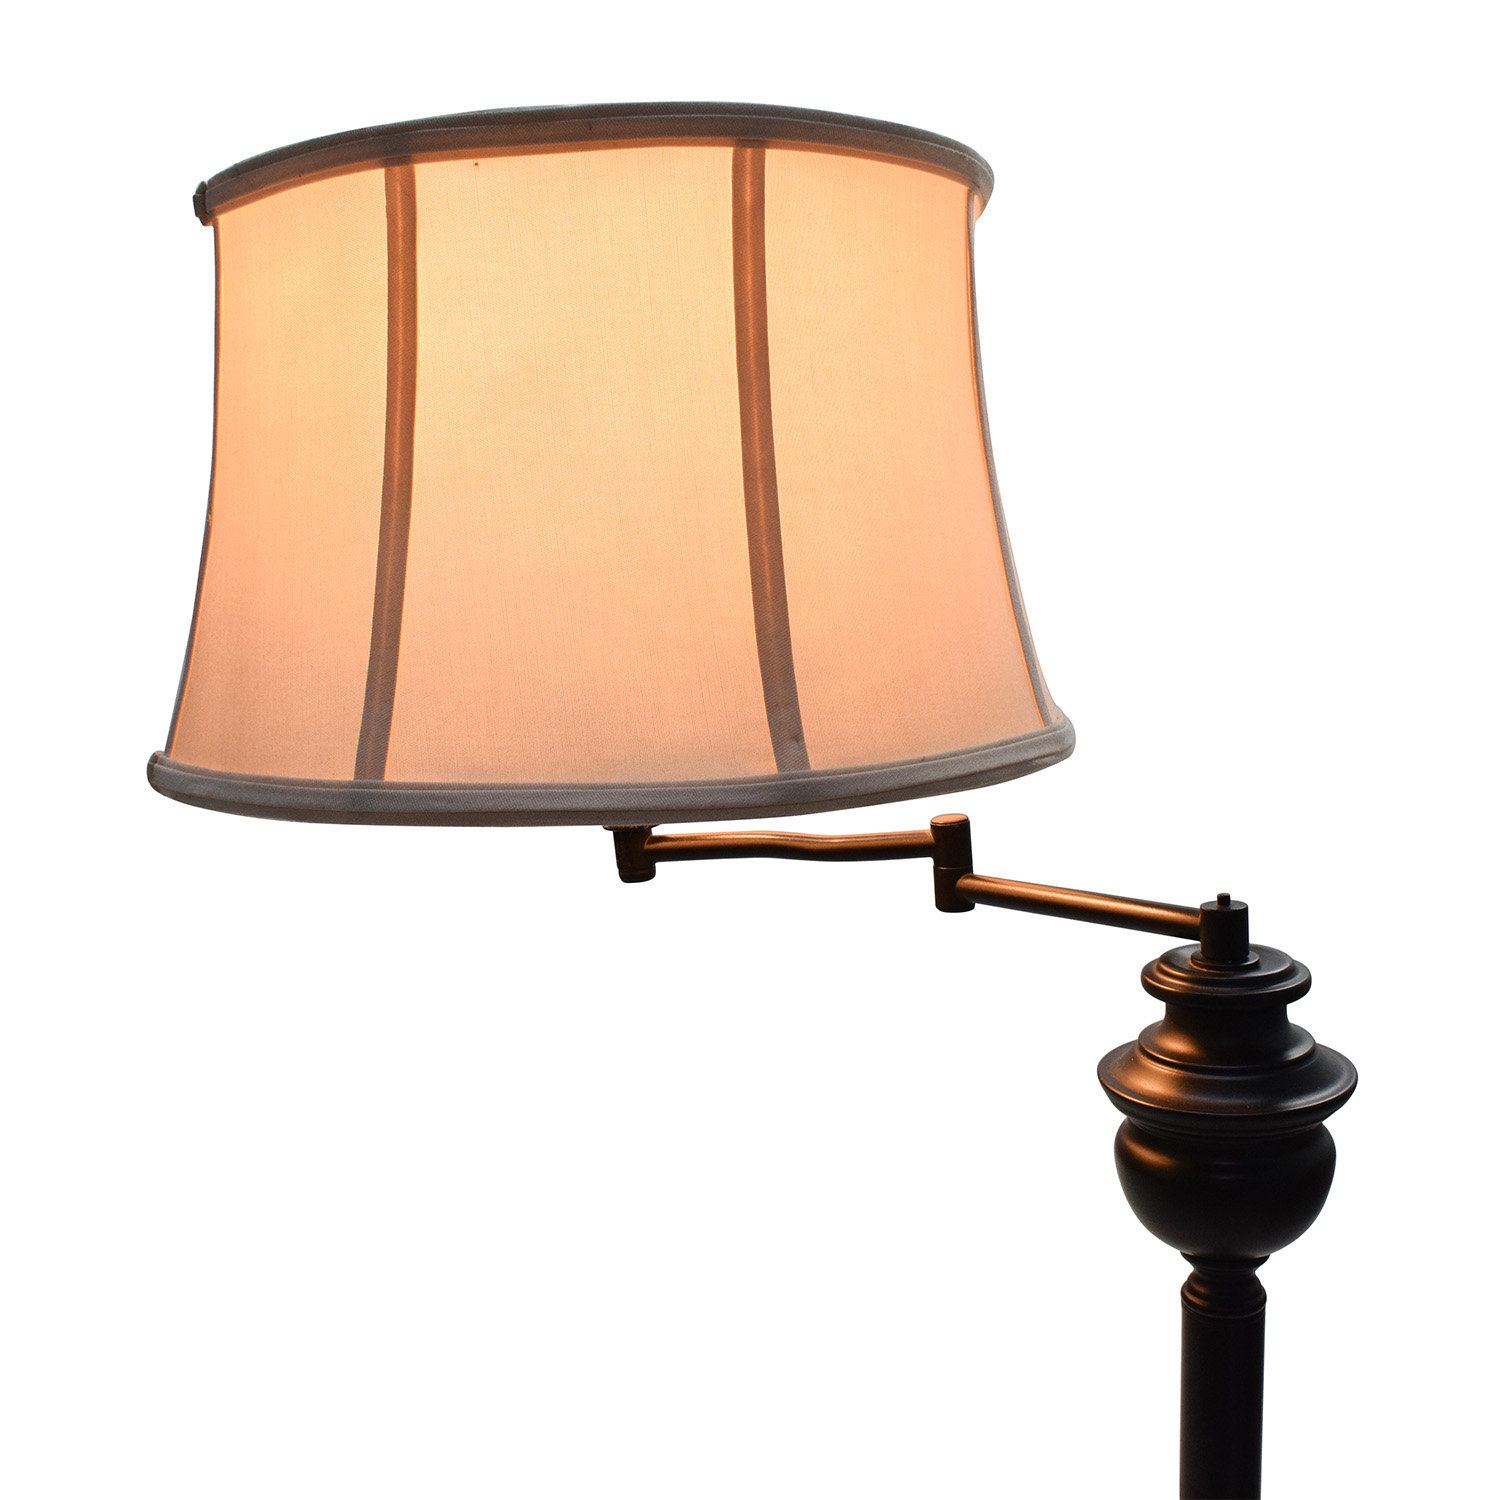 56 Off Macy S Macy S Swing Arm Floor Lamp Decor